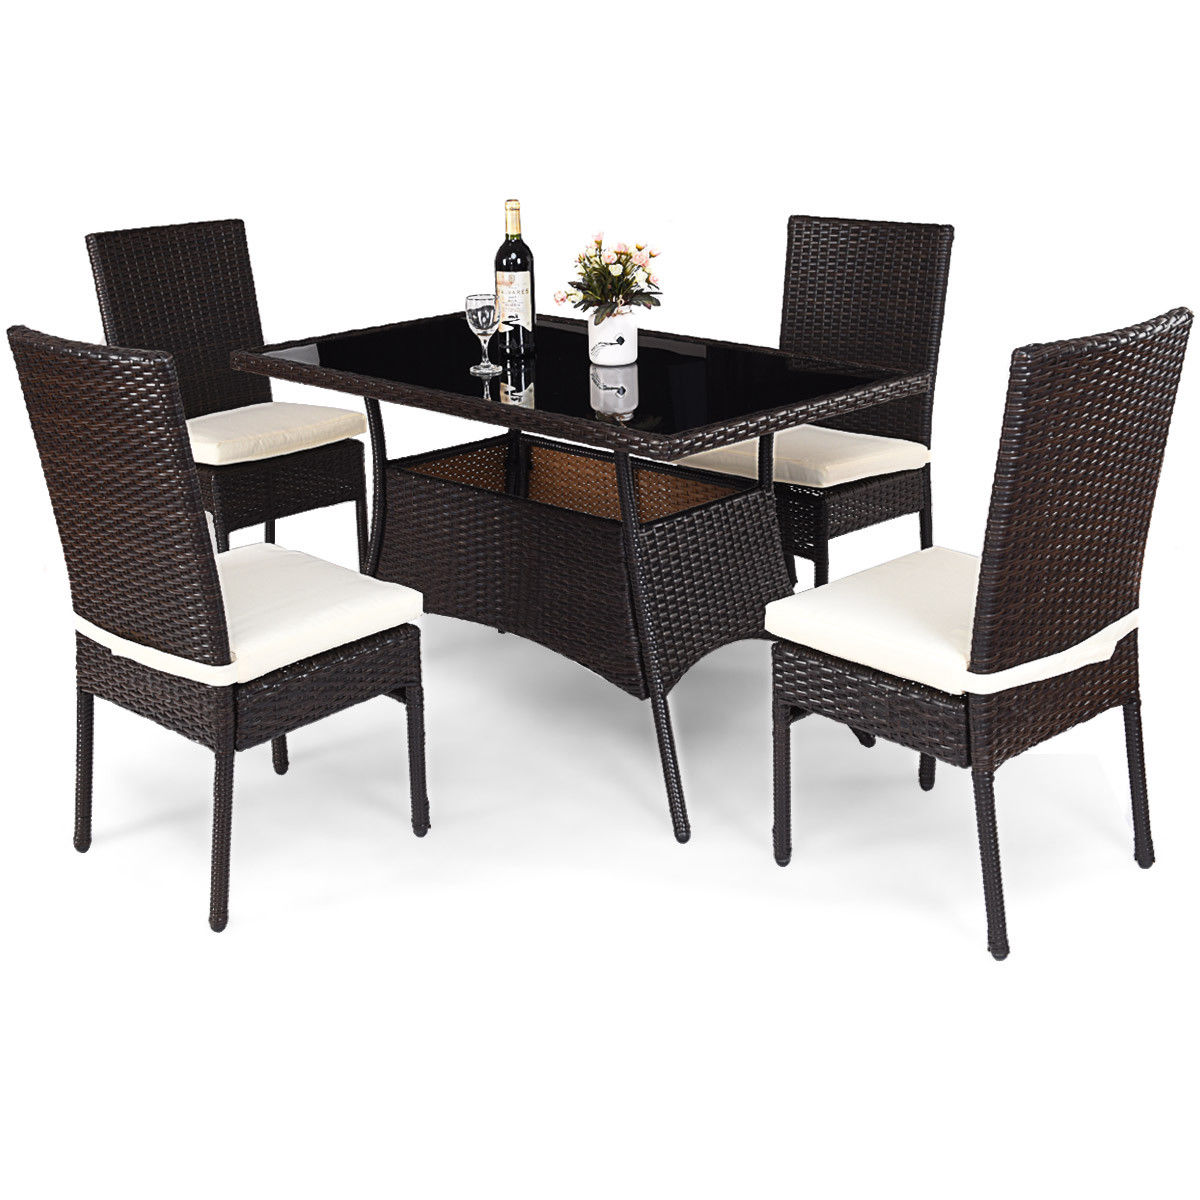 Click here to buy Costway 5 Piece Outdoor Patio Furniture Rattan Dining Table Cushioned Chairs Set by Costway.